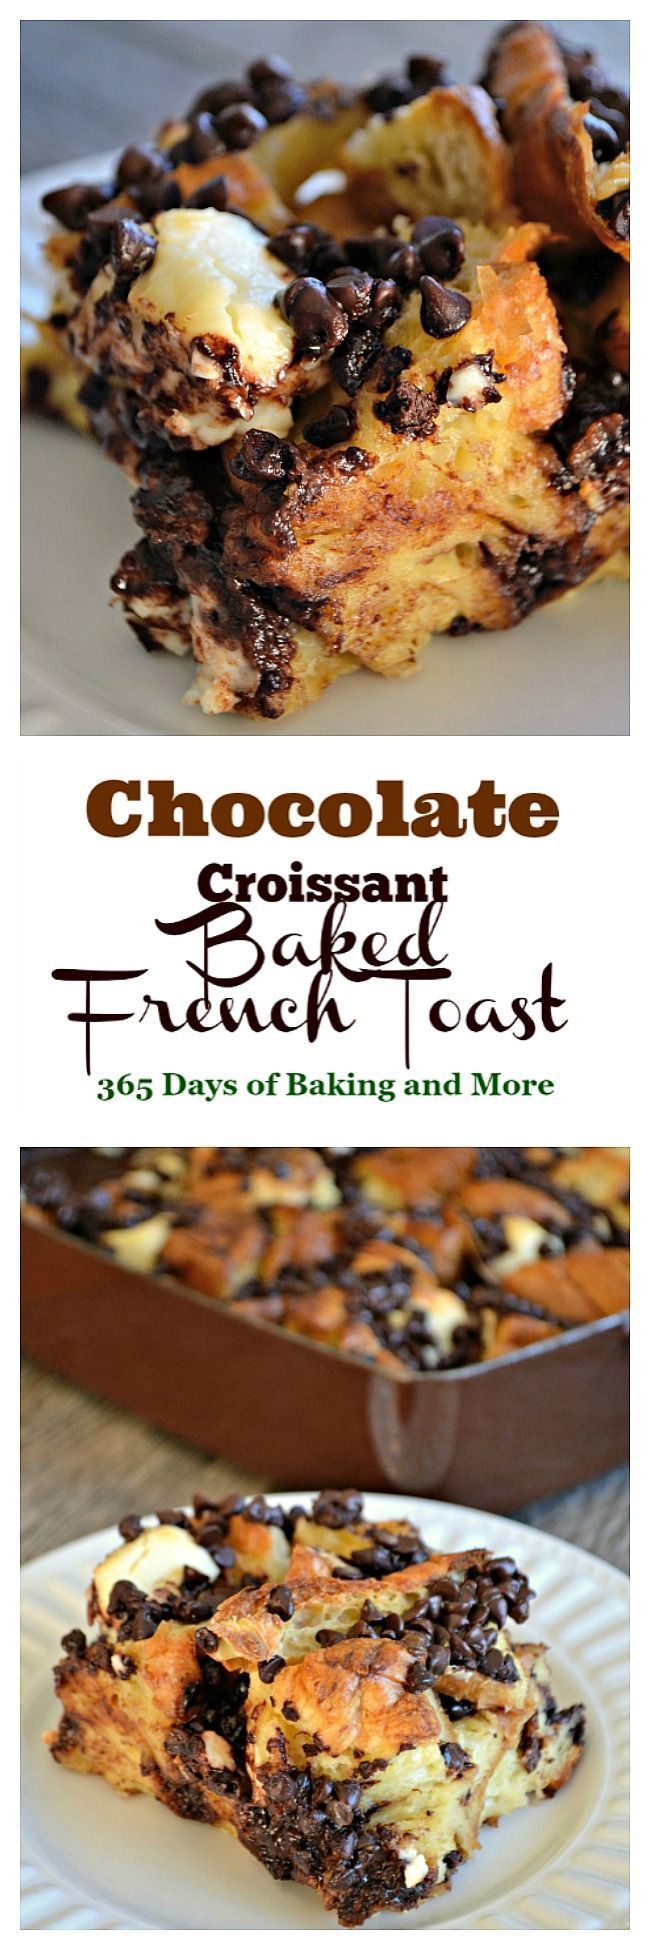 Chocolate Croissant Baked French Toast is chocolate, croissants, and cream cheese soaked overnight in an egg mixture.